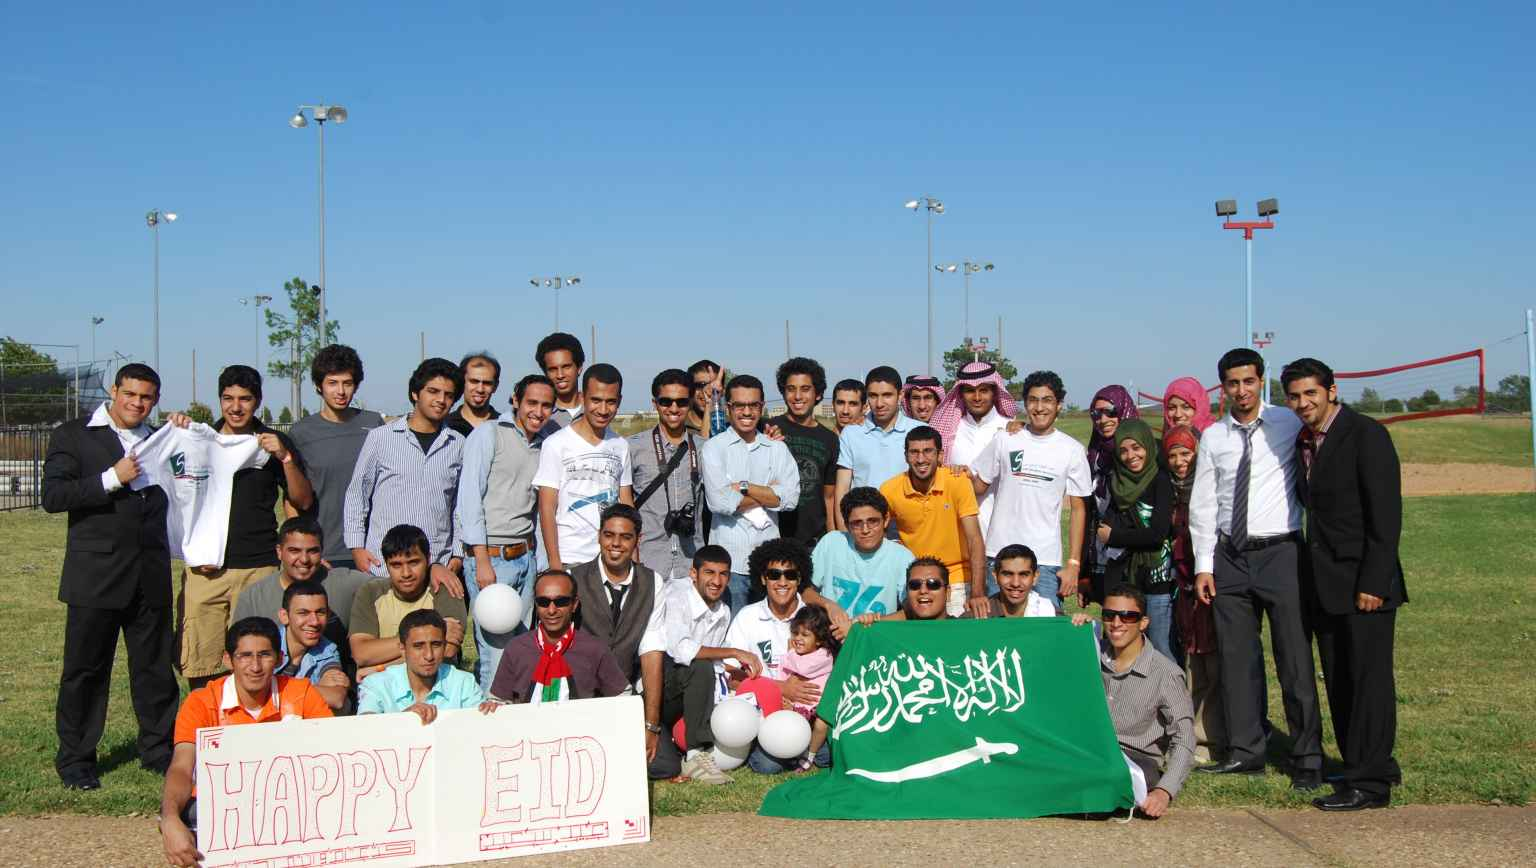 International students celebrating Eid